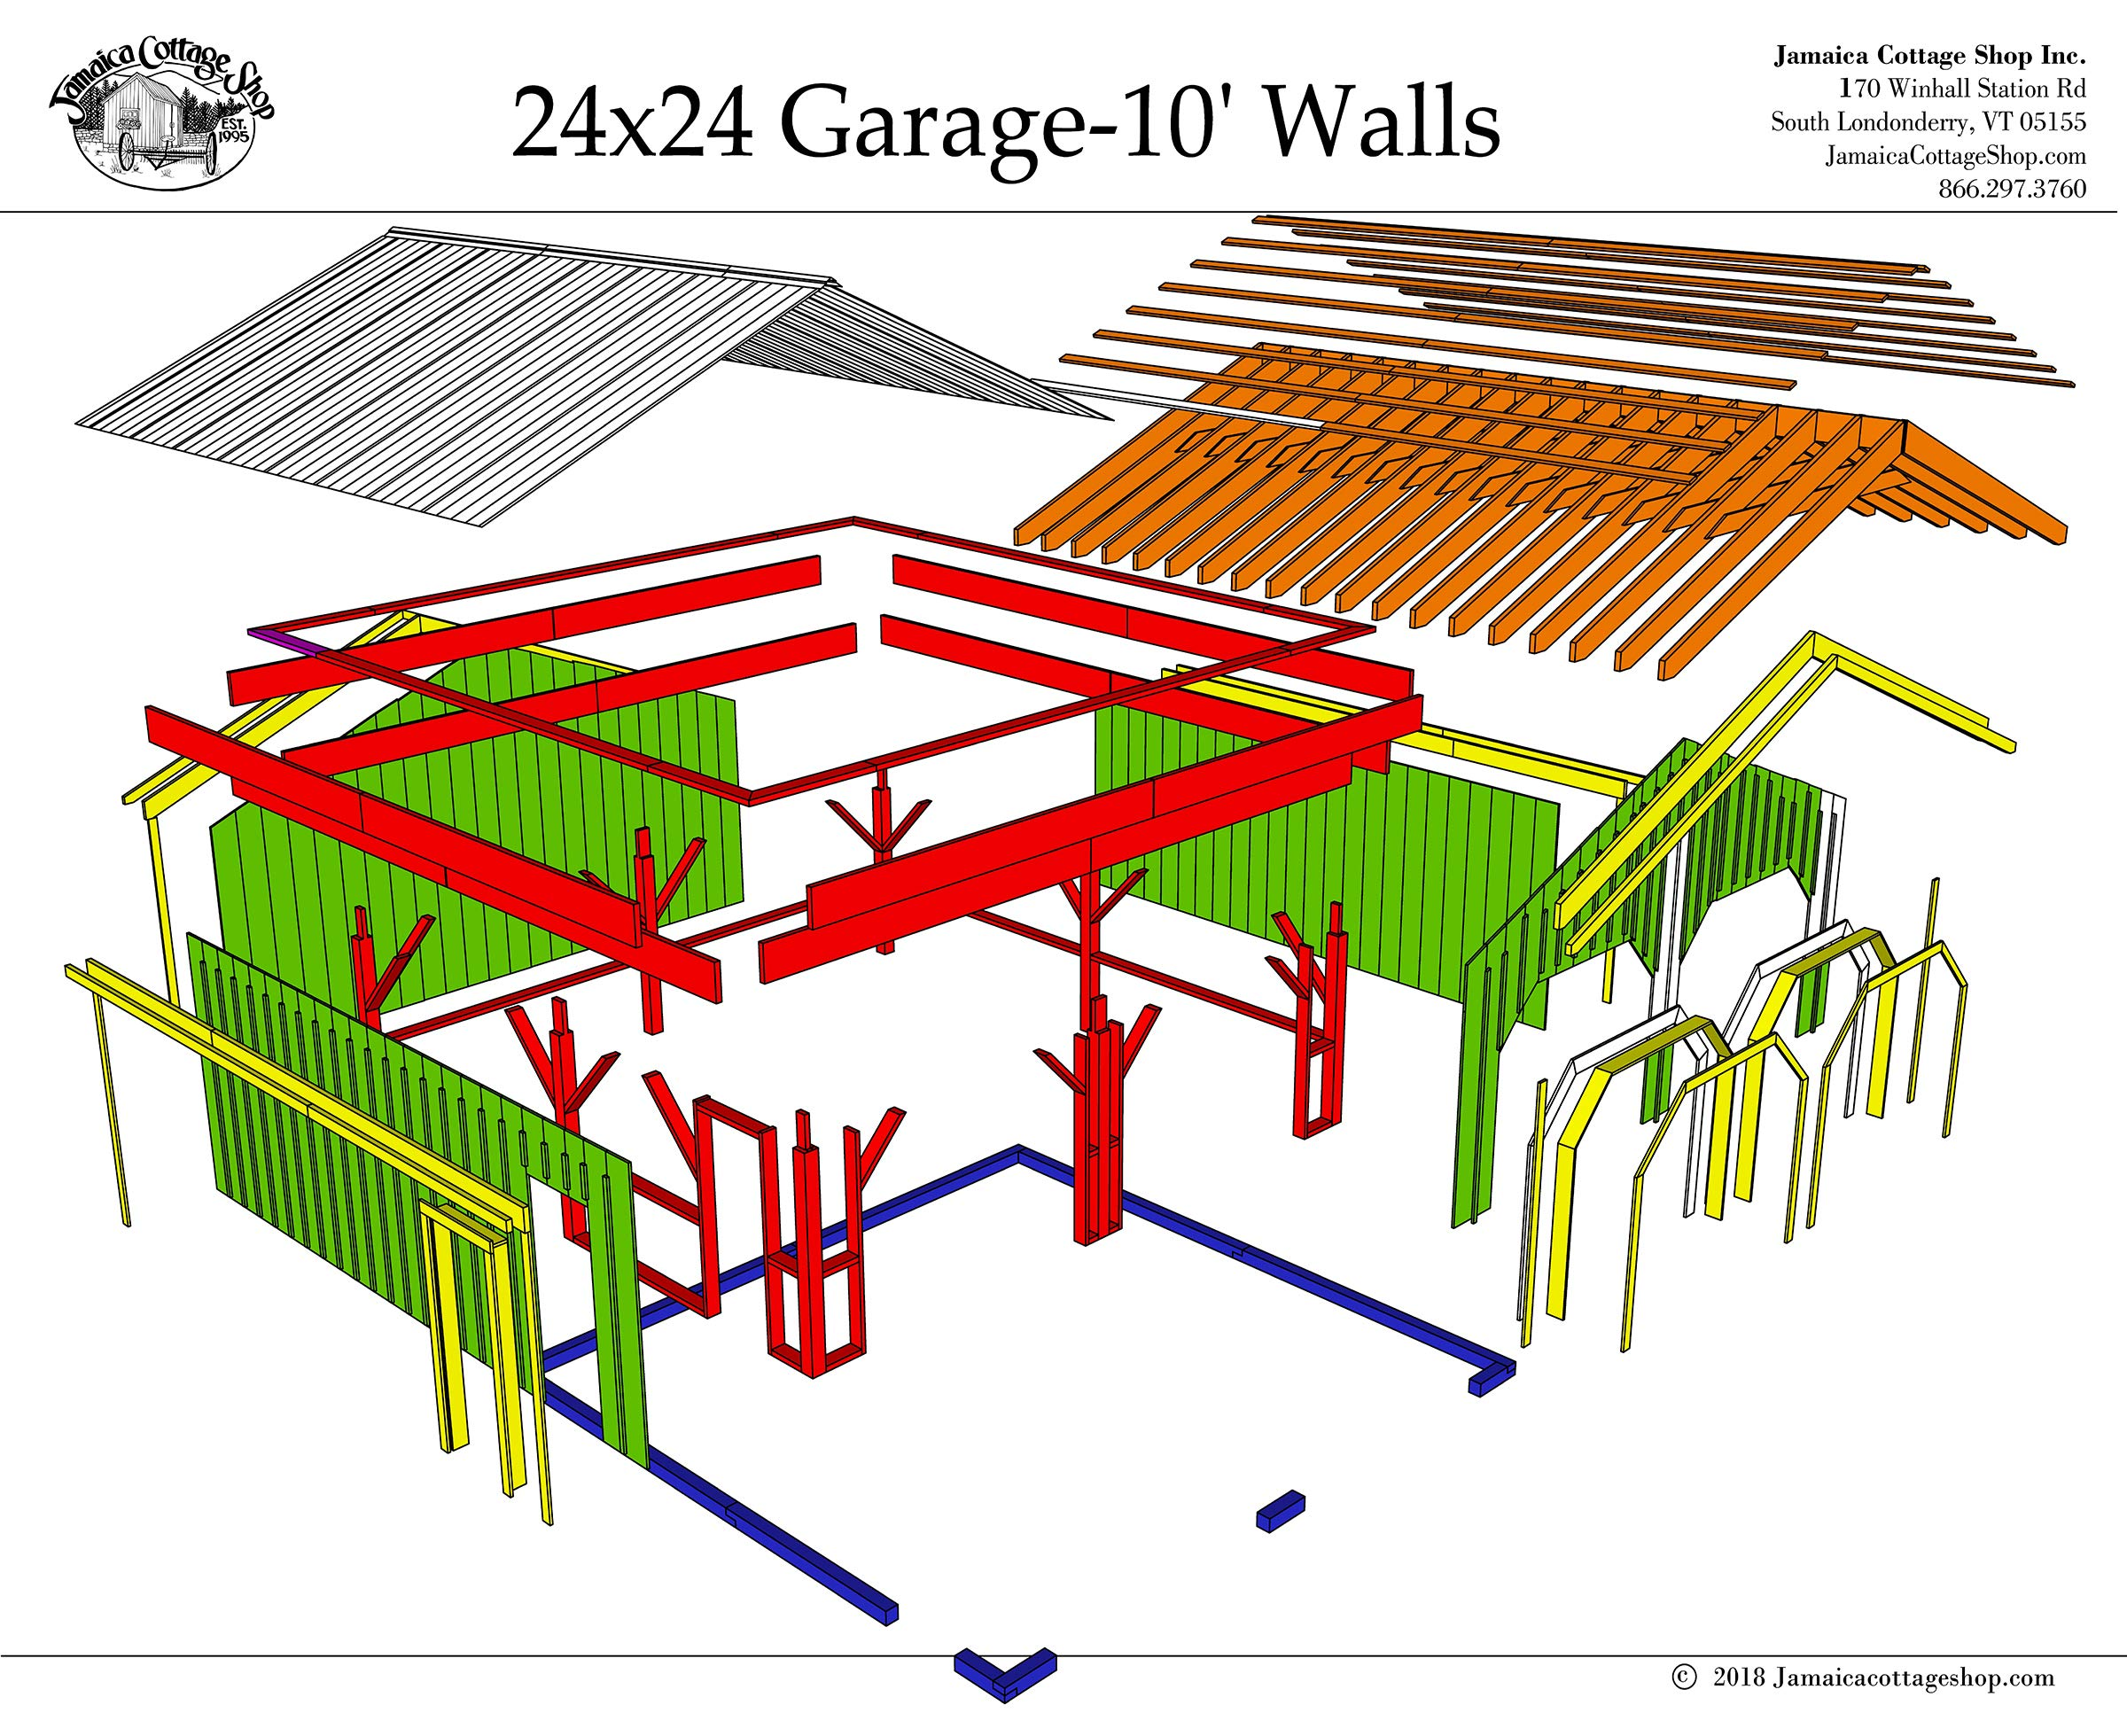 24x24 Timber Frame Post & Beam Garage Plans with 10' Wall Height - Step-By-Step DIY Building Plans by Jamaica Cottage Shop, Inc.